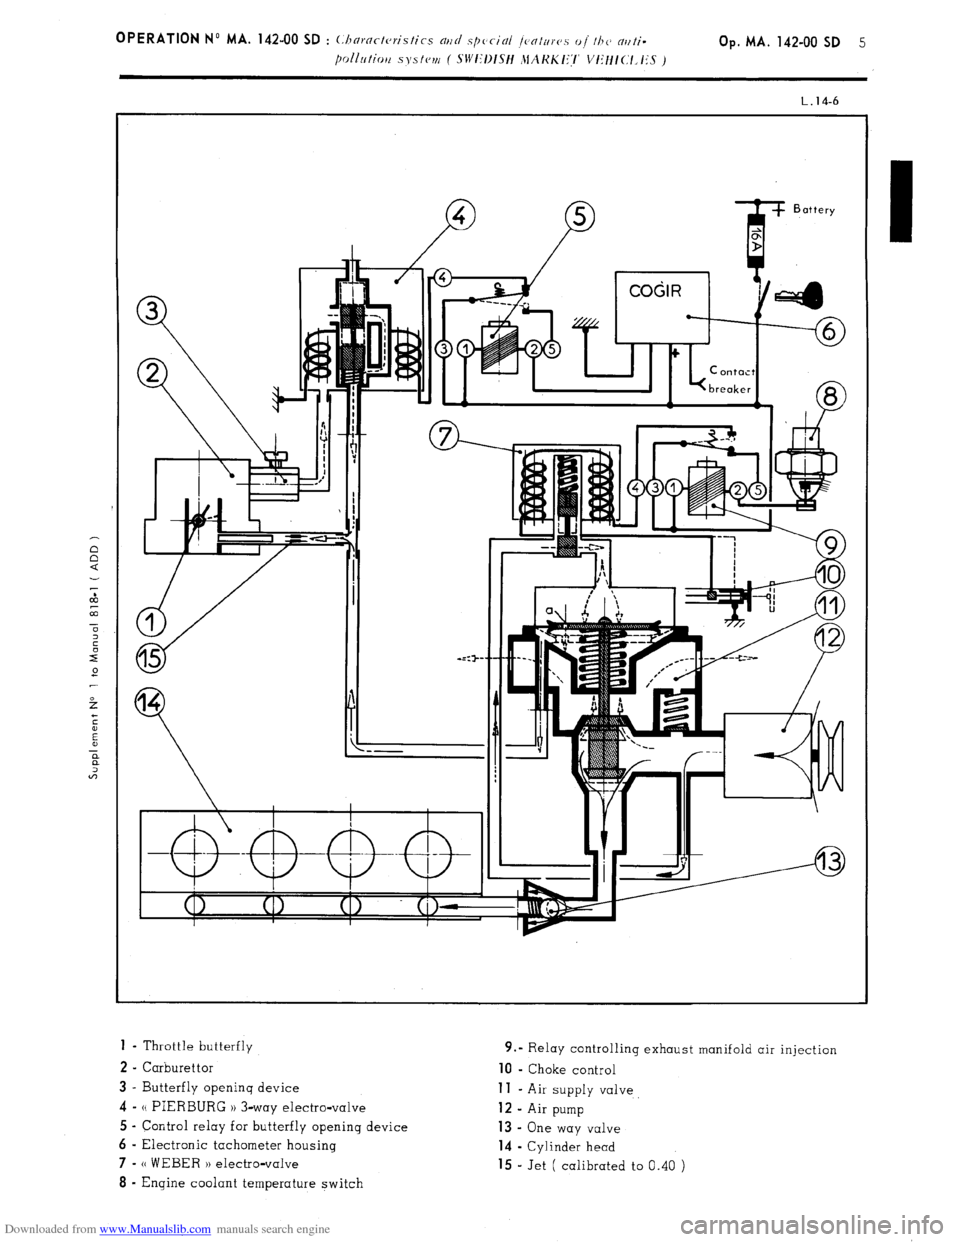 Citroen Alarm Wiring Diagram : Service manual citroen cx valve wiring diagrams